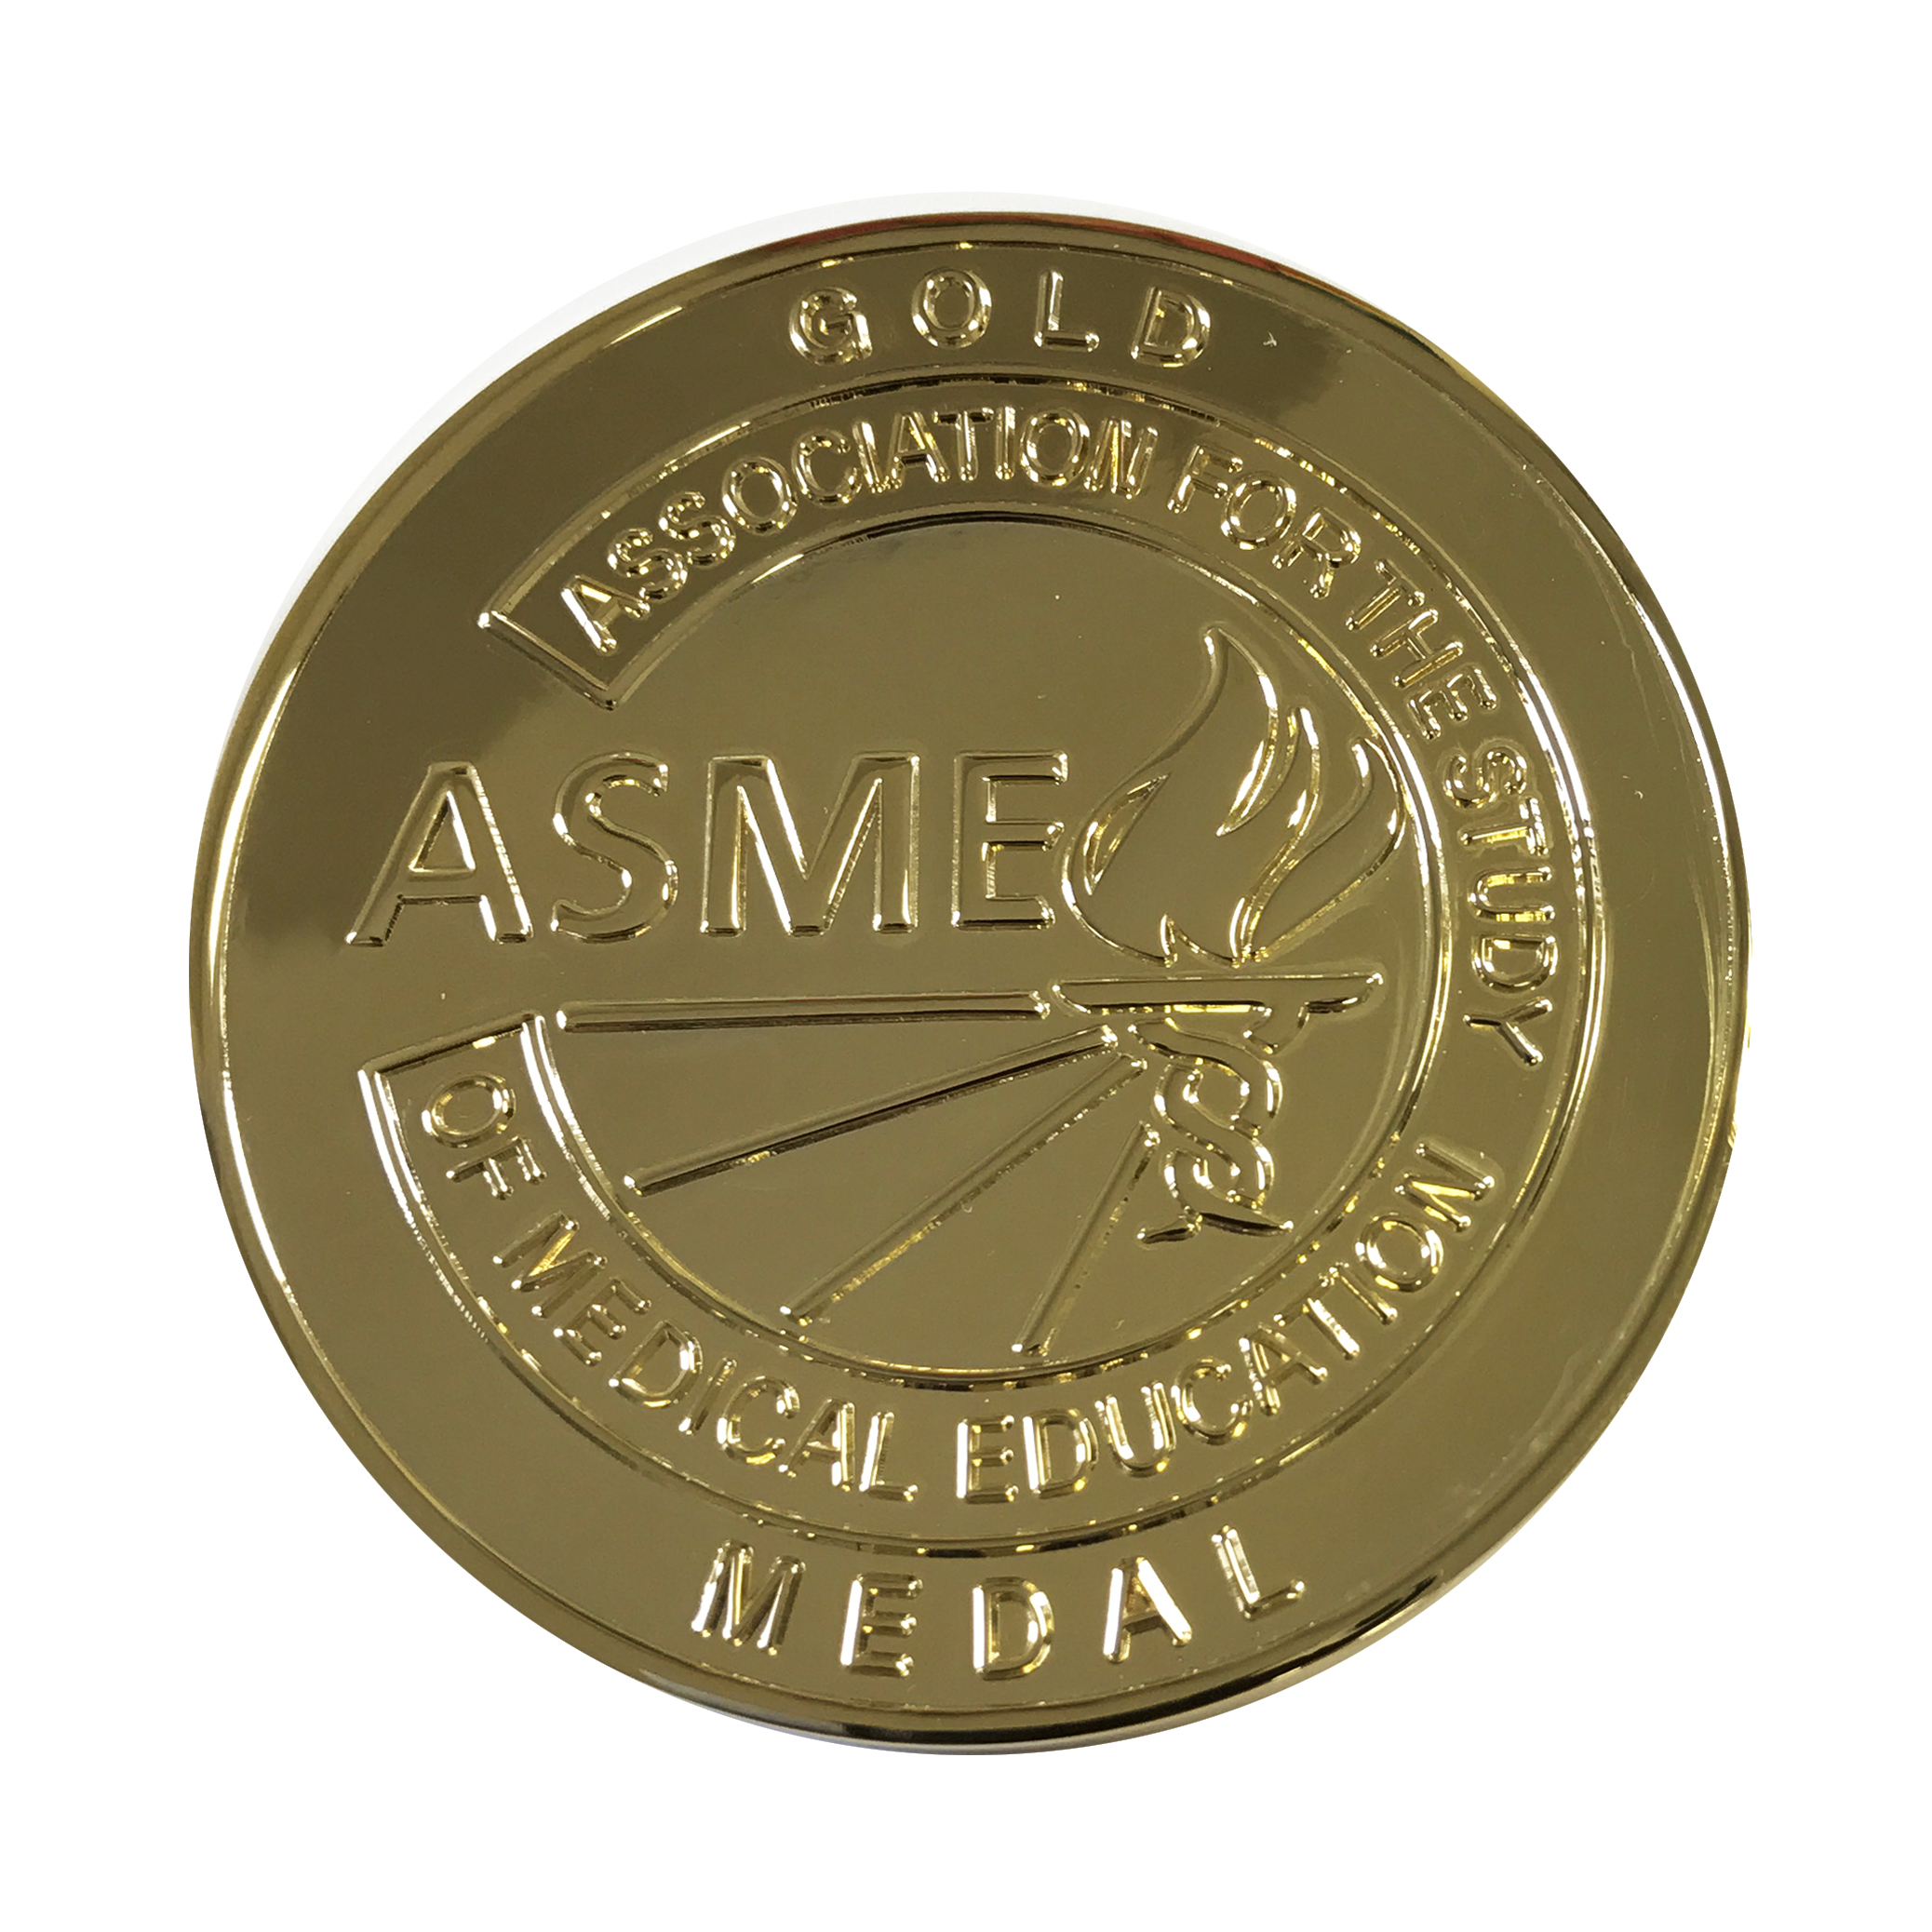 Nominations for ASME Gold Medal 2020 welcomed